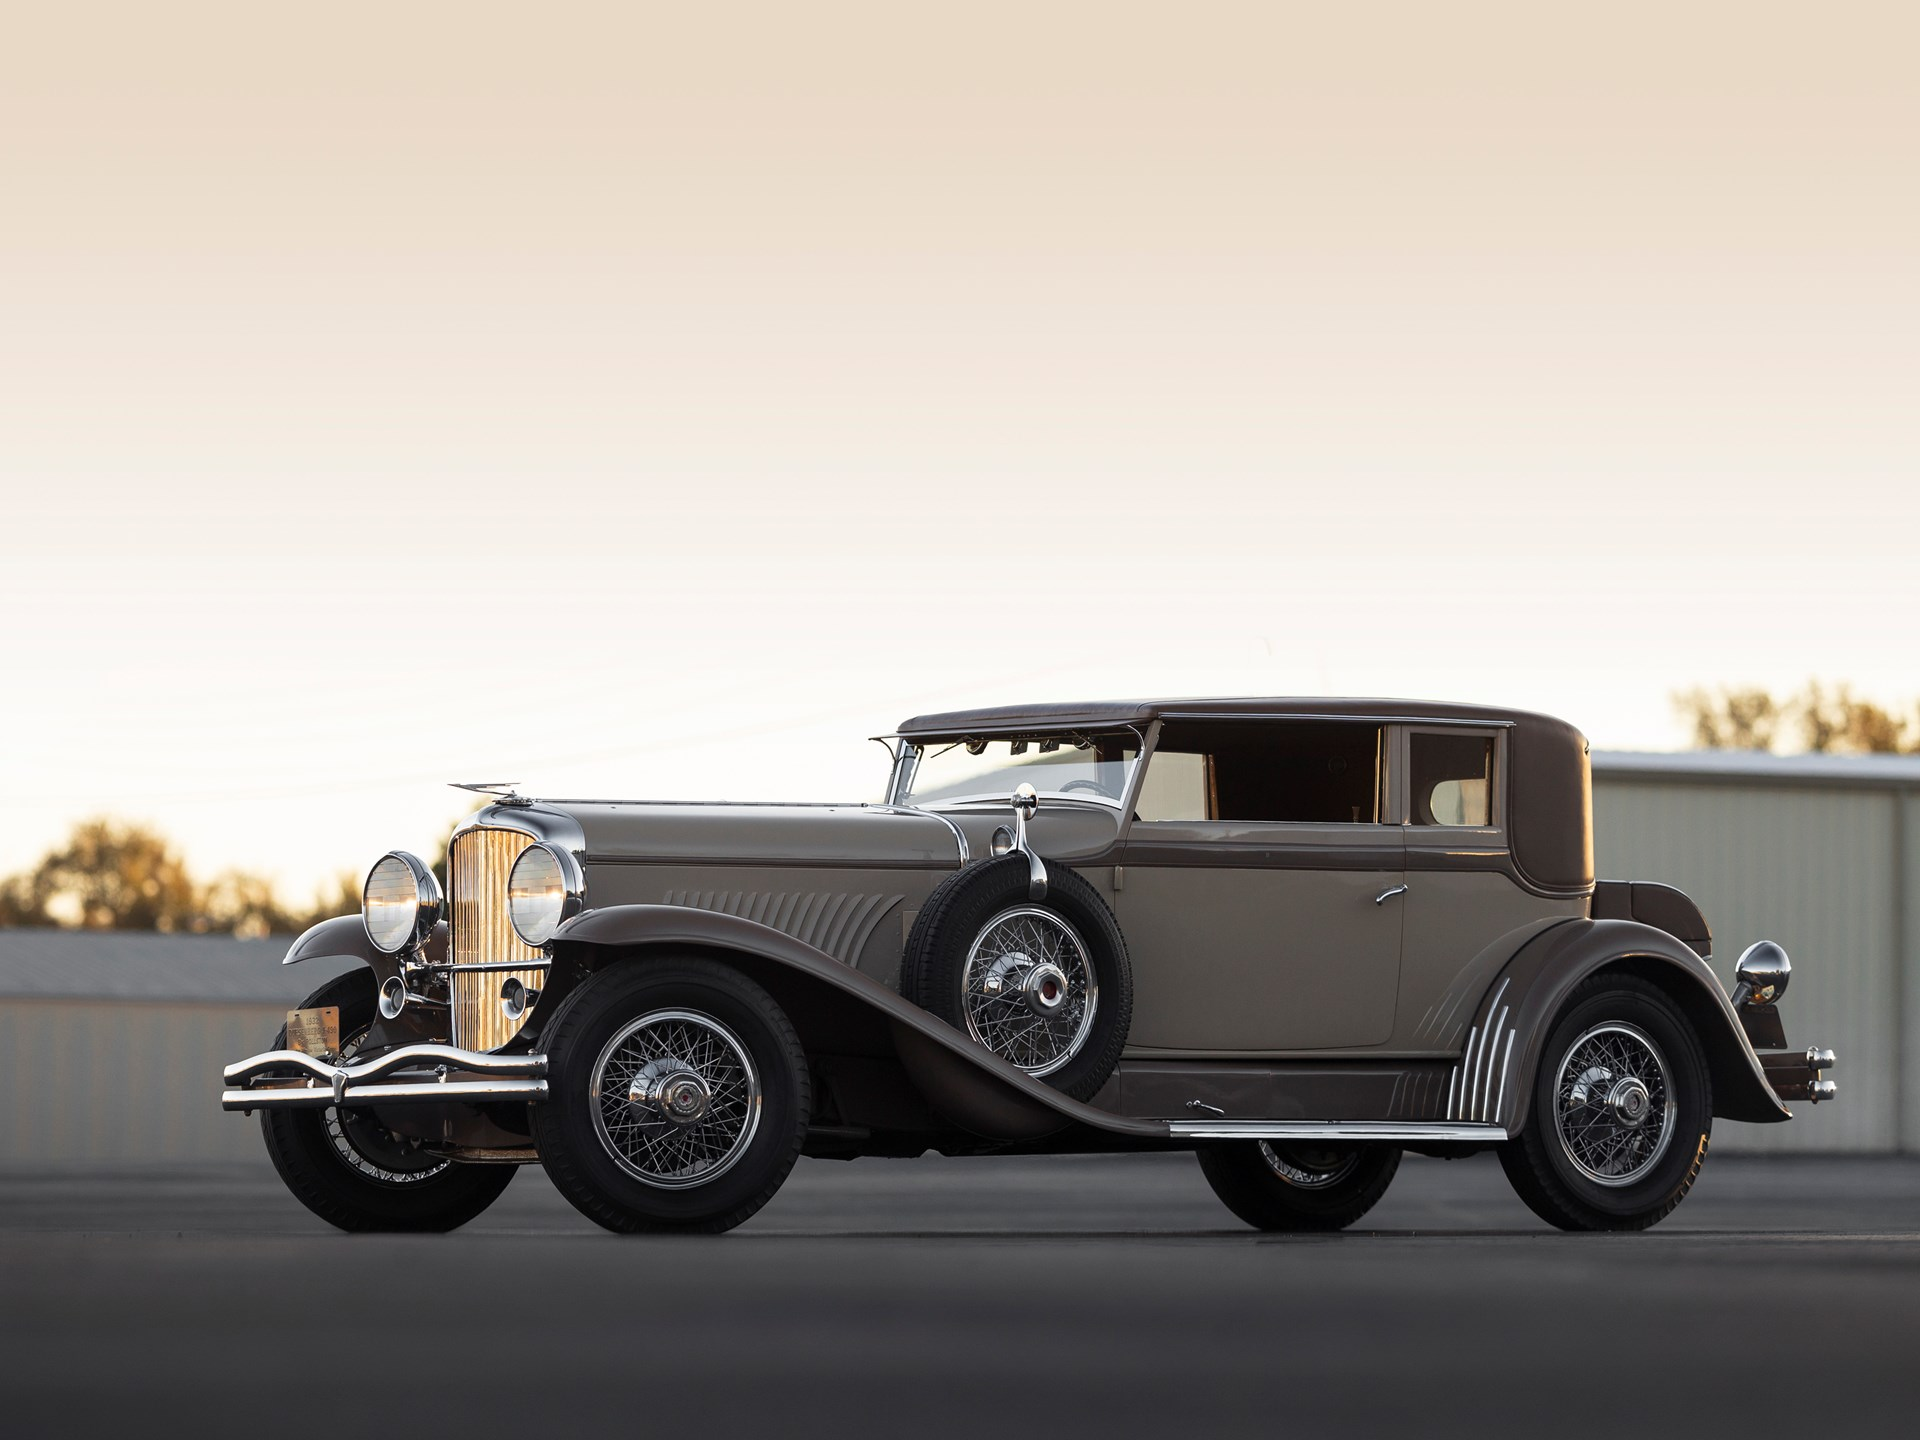 Image result for RM amelia 2020 duesenberg